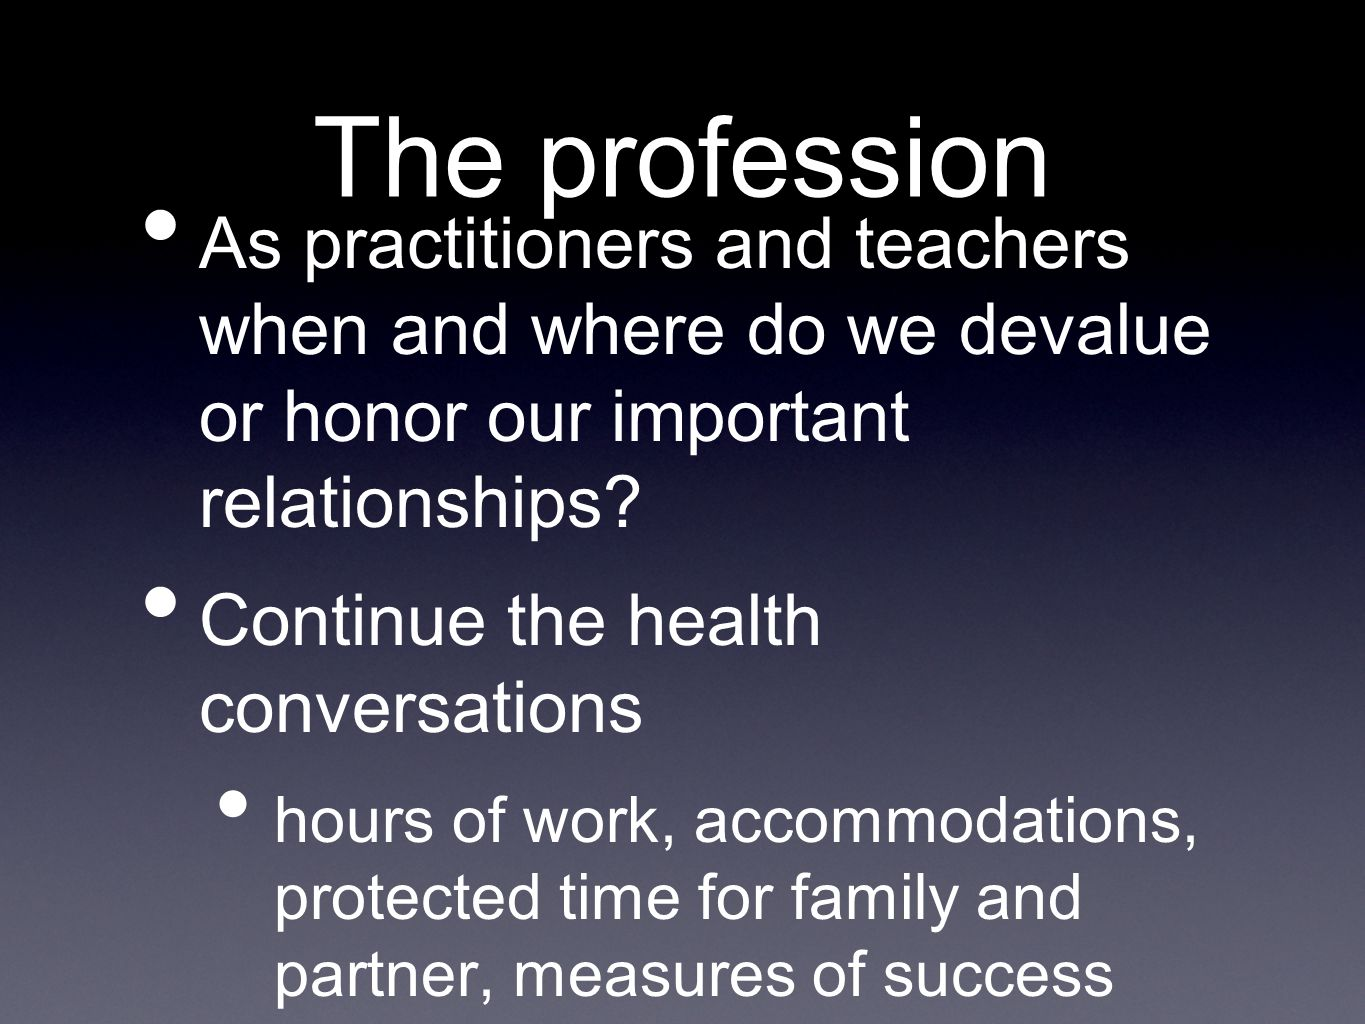 The profession As practitioners and teachers when and where do we devalue or honor our important relationships.